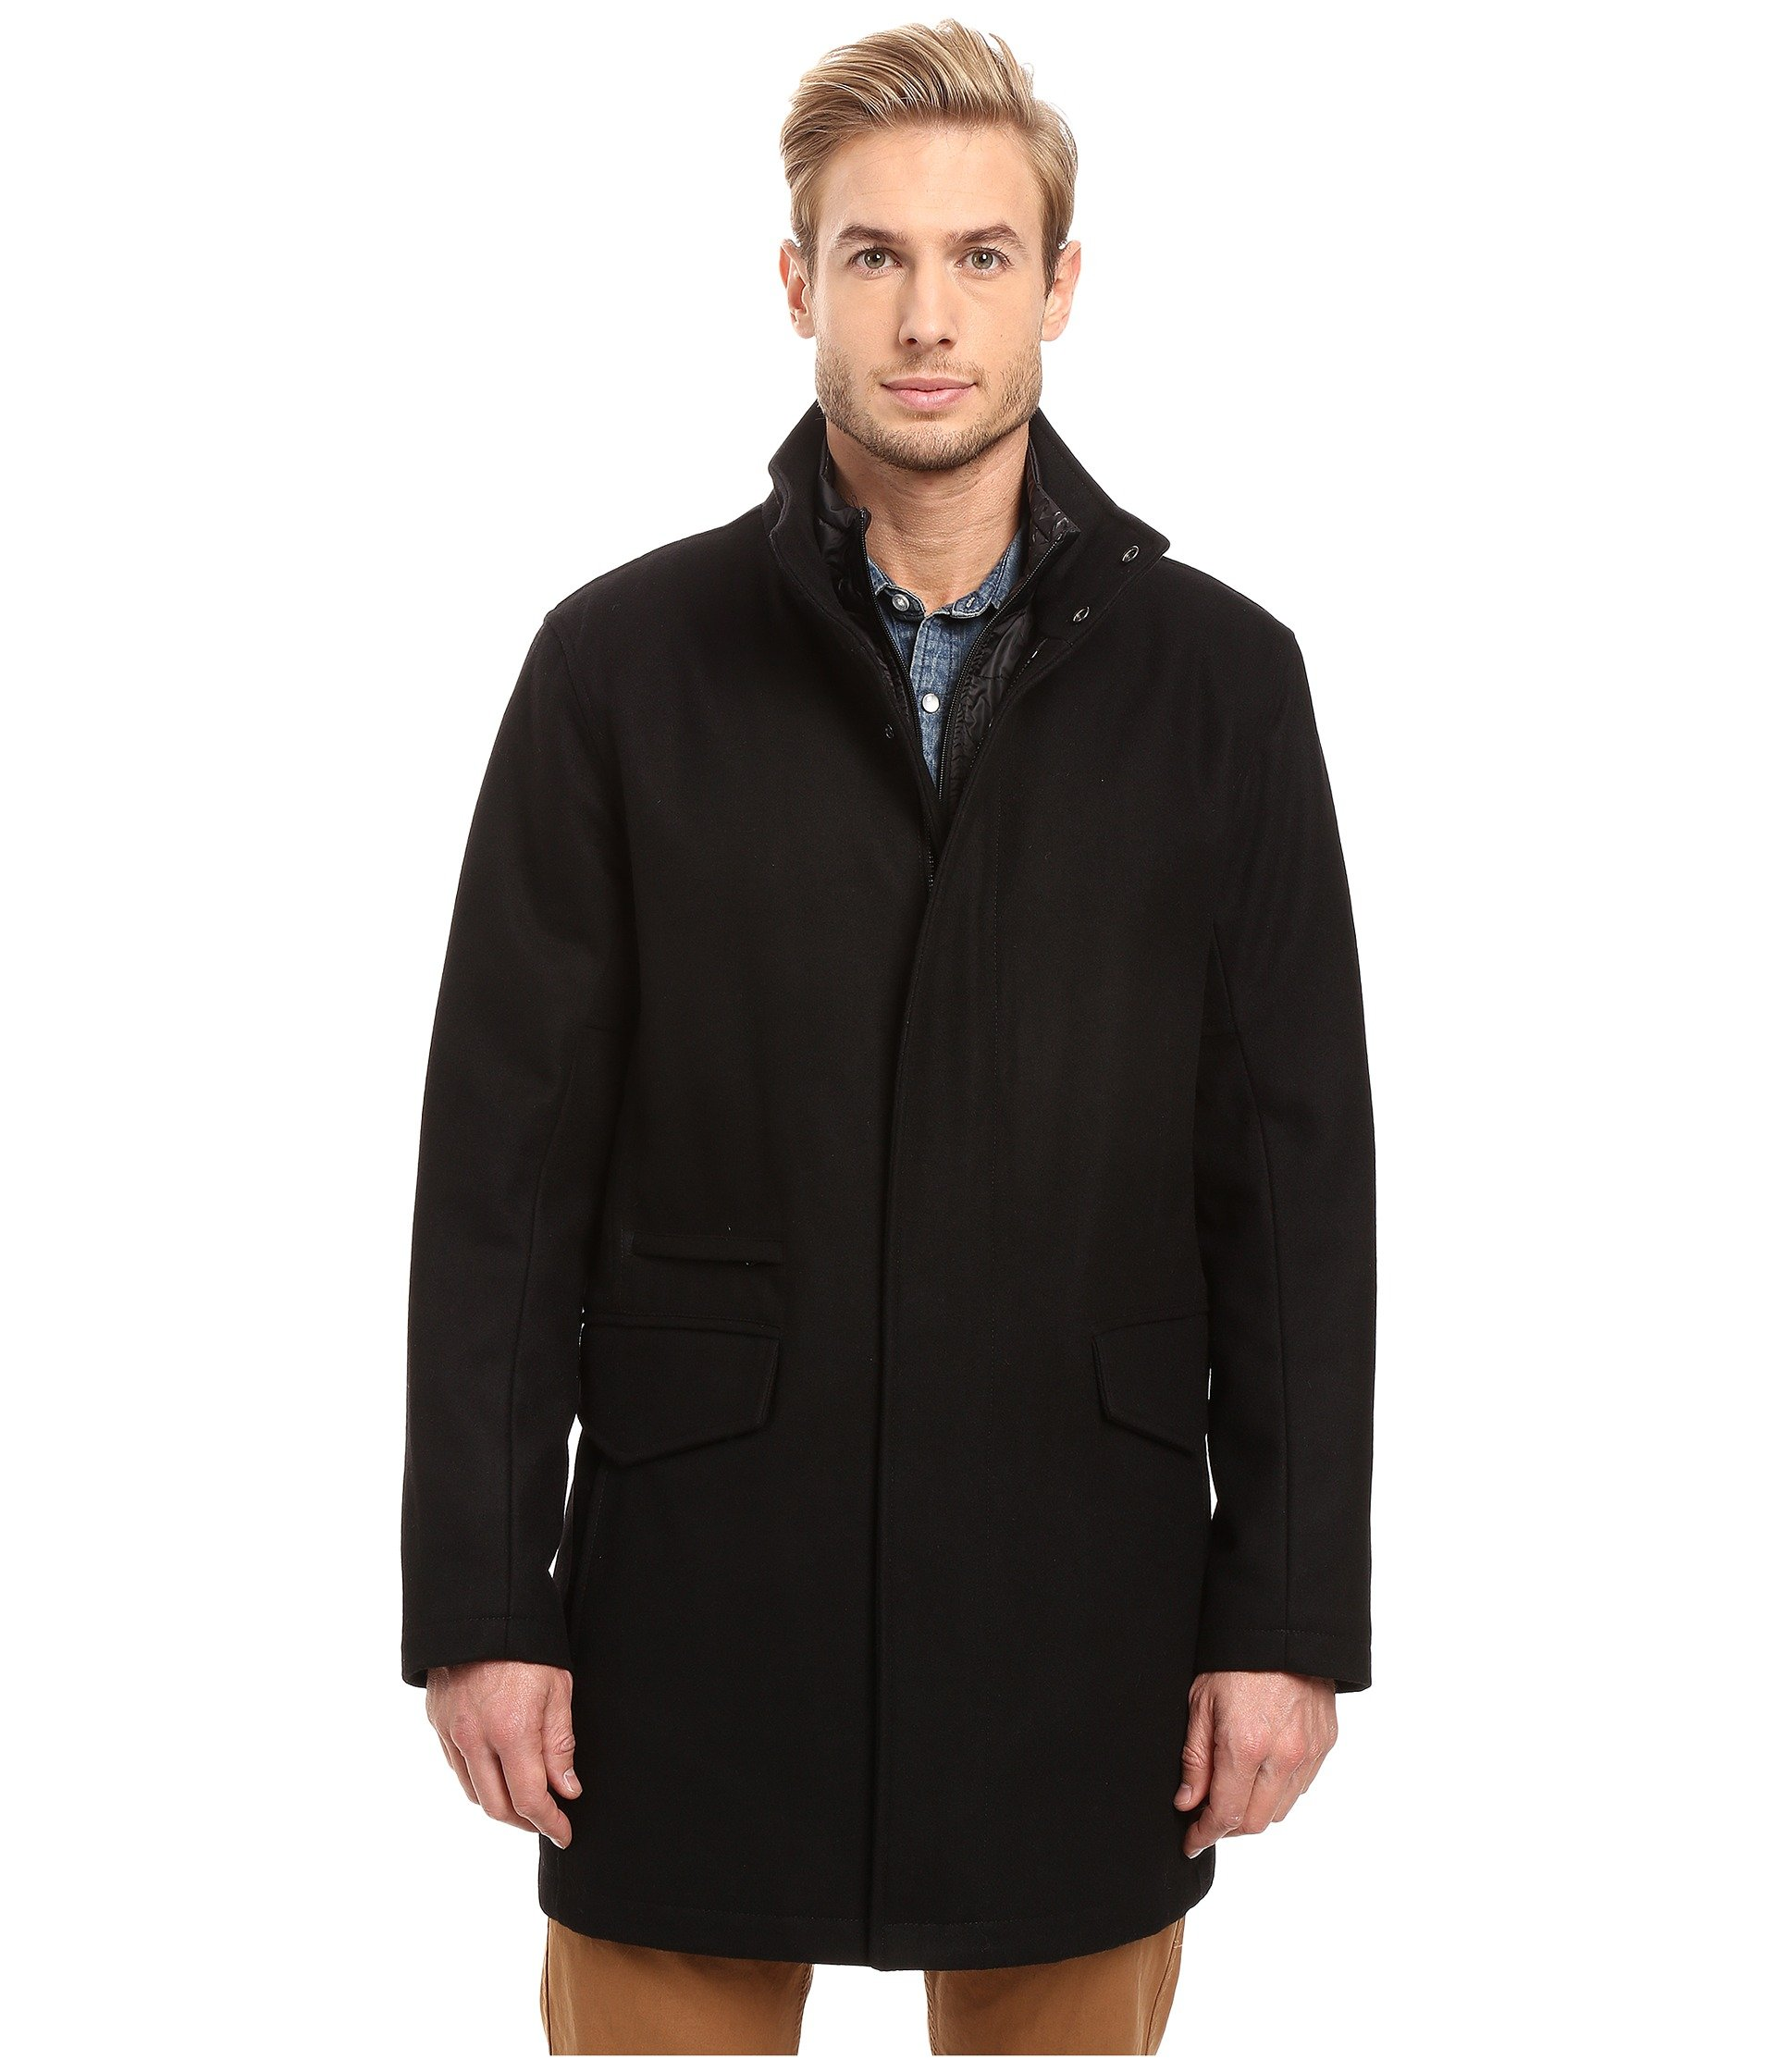 Marc New York Wools Stanford Pressed Wool Car Coat with Removable Quilted Bib, BLACK